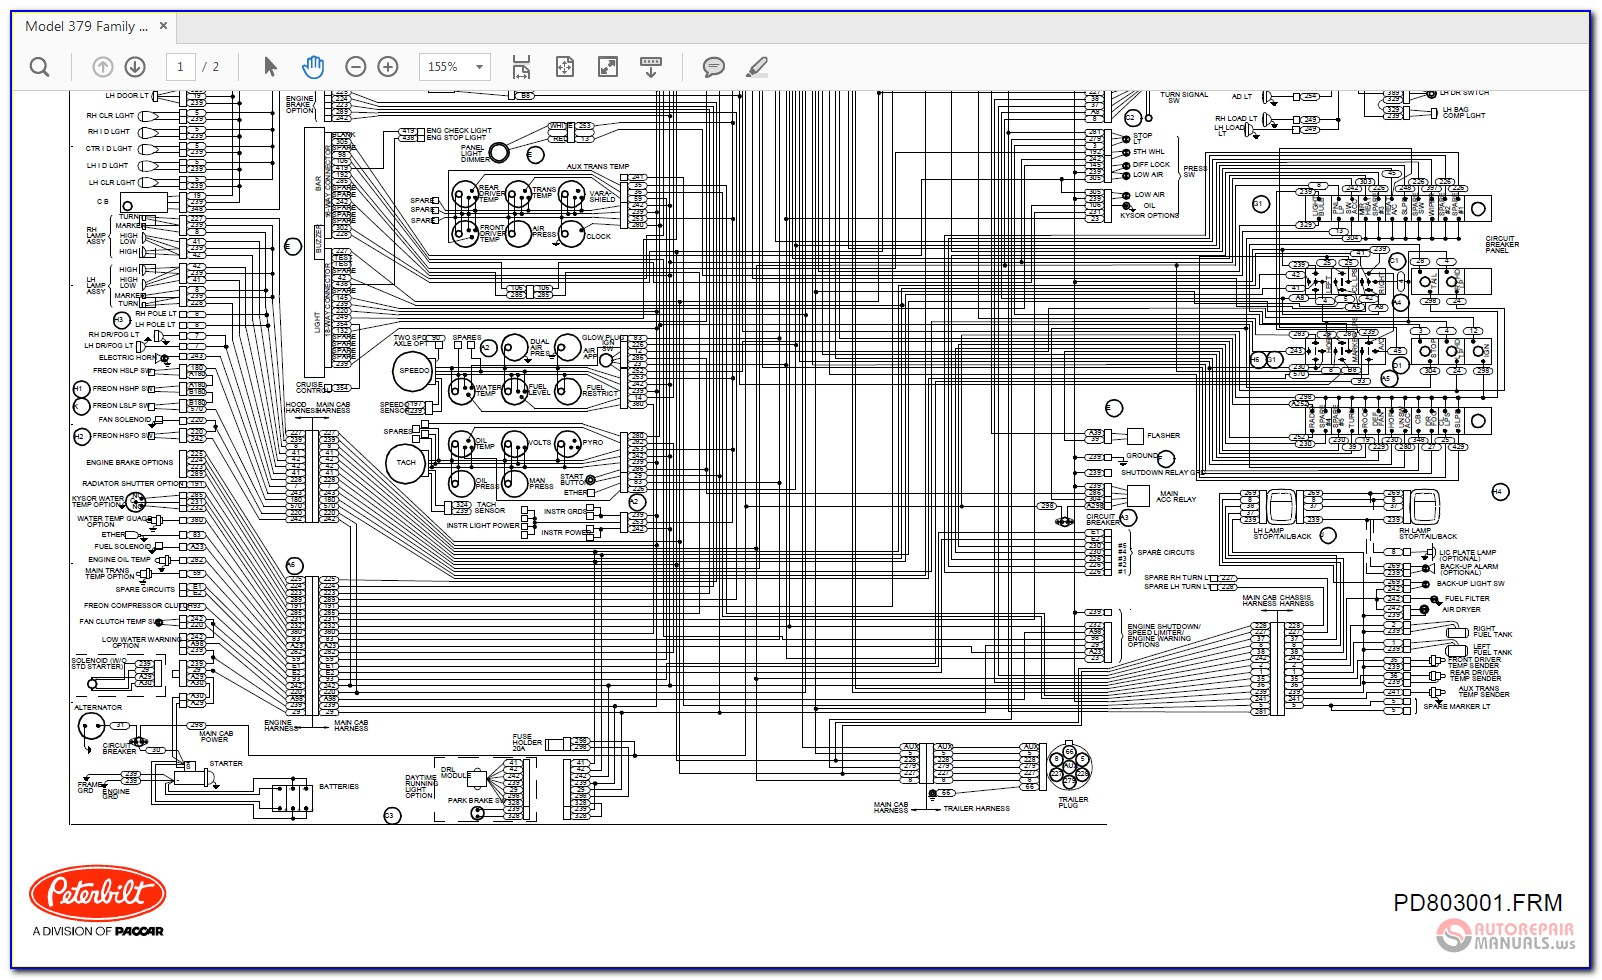 2016 Peterbilt 389 Wiring Diagram